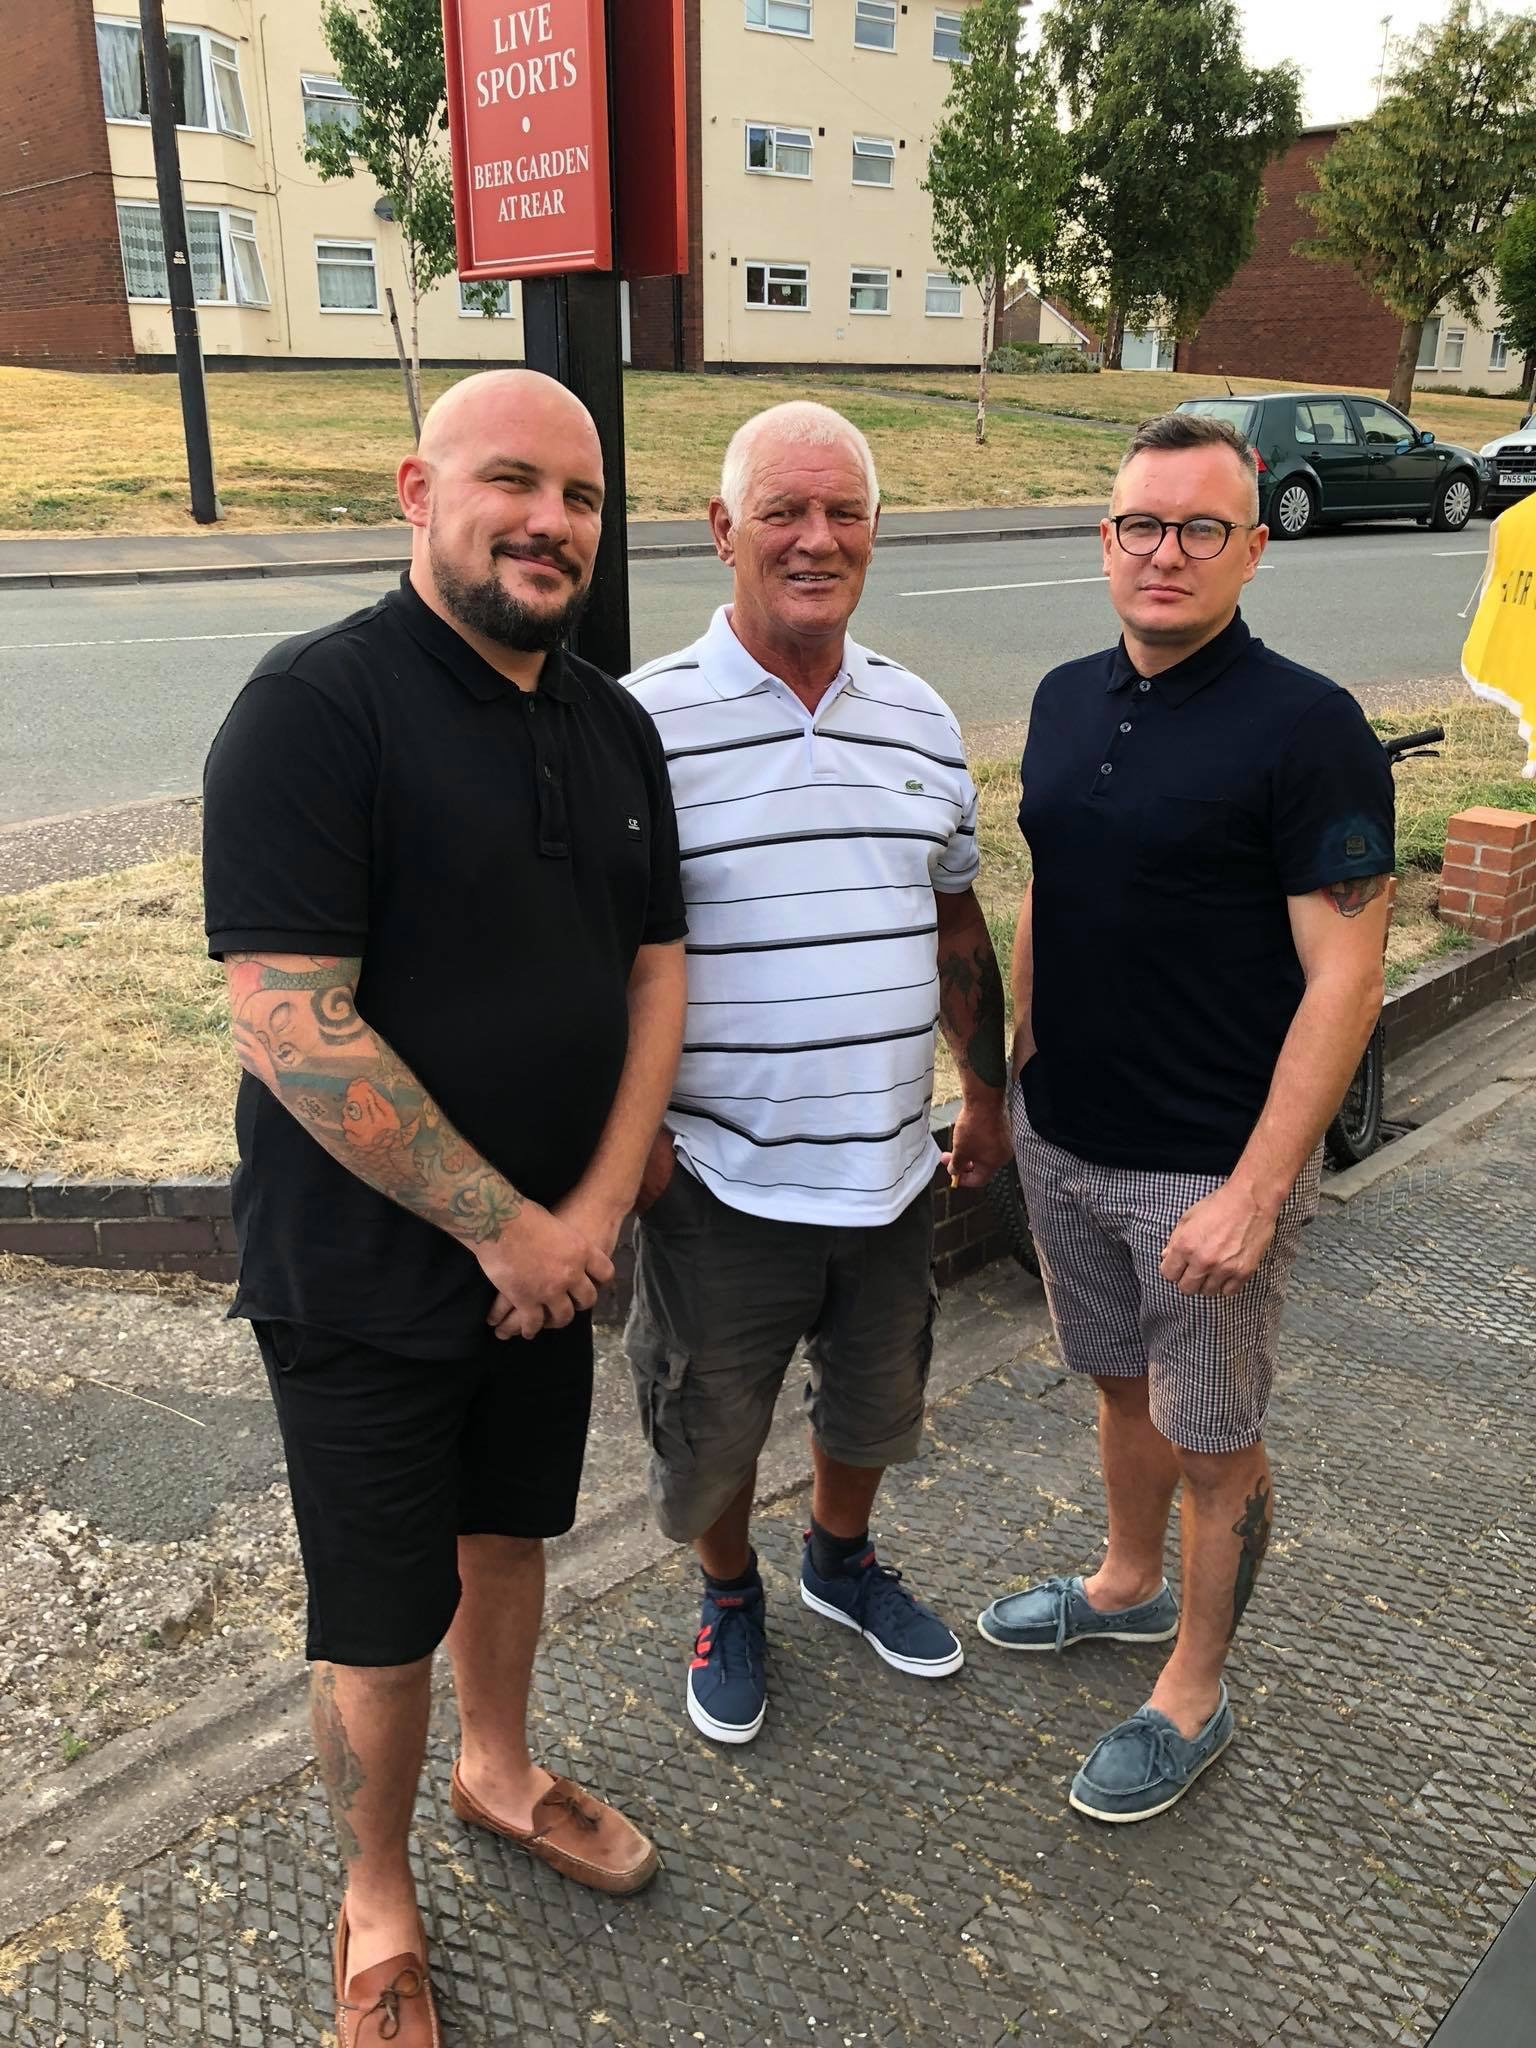 Craig Spillane (on the end right) with his dad and brother. Credit: Craig Spillane/LADbible